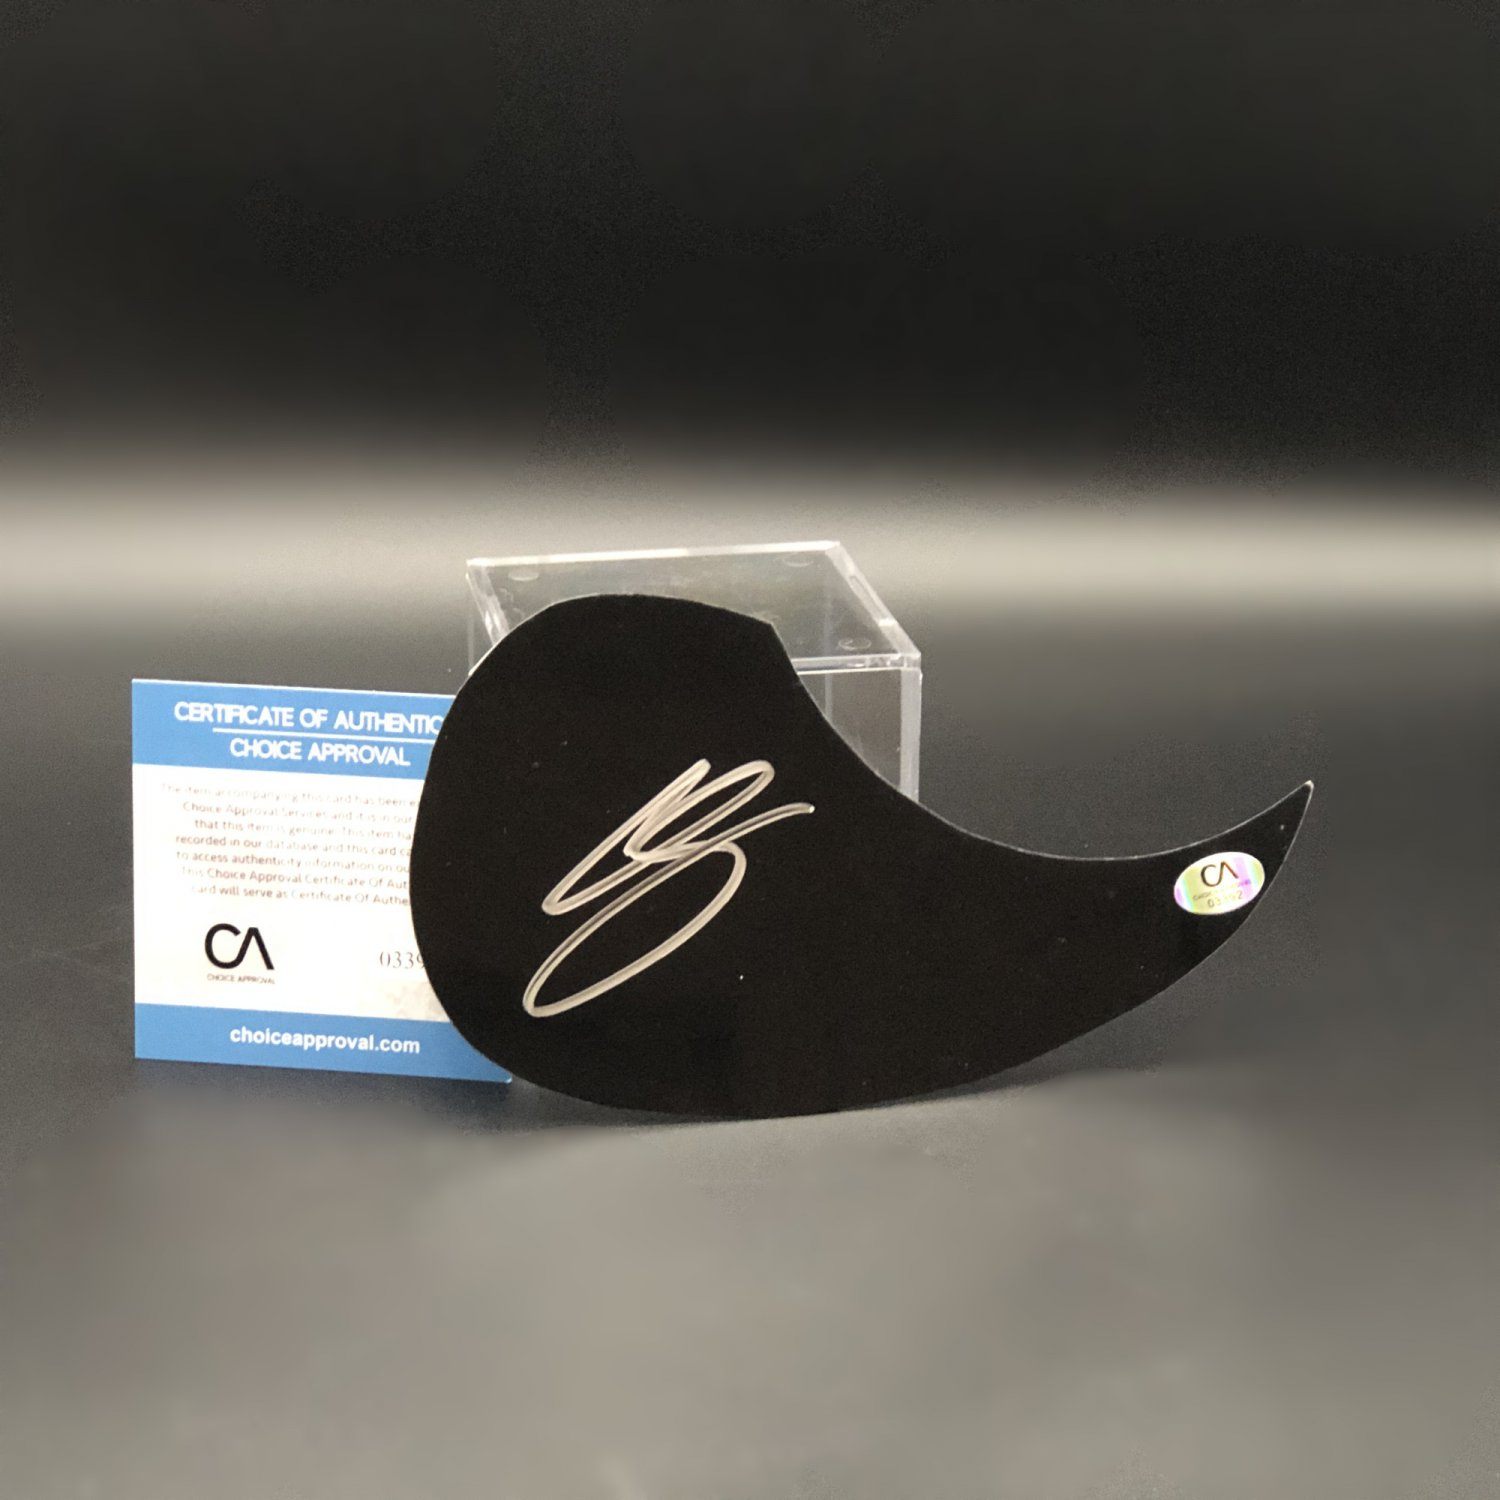 Chris Stapleton Country Music Superstar Autographed Acoustic Guitar Pick Guard